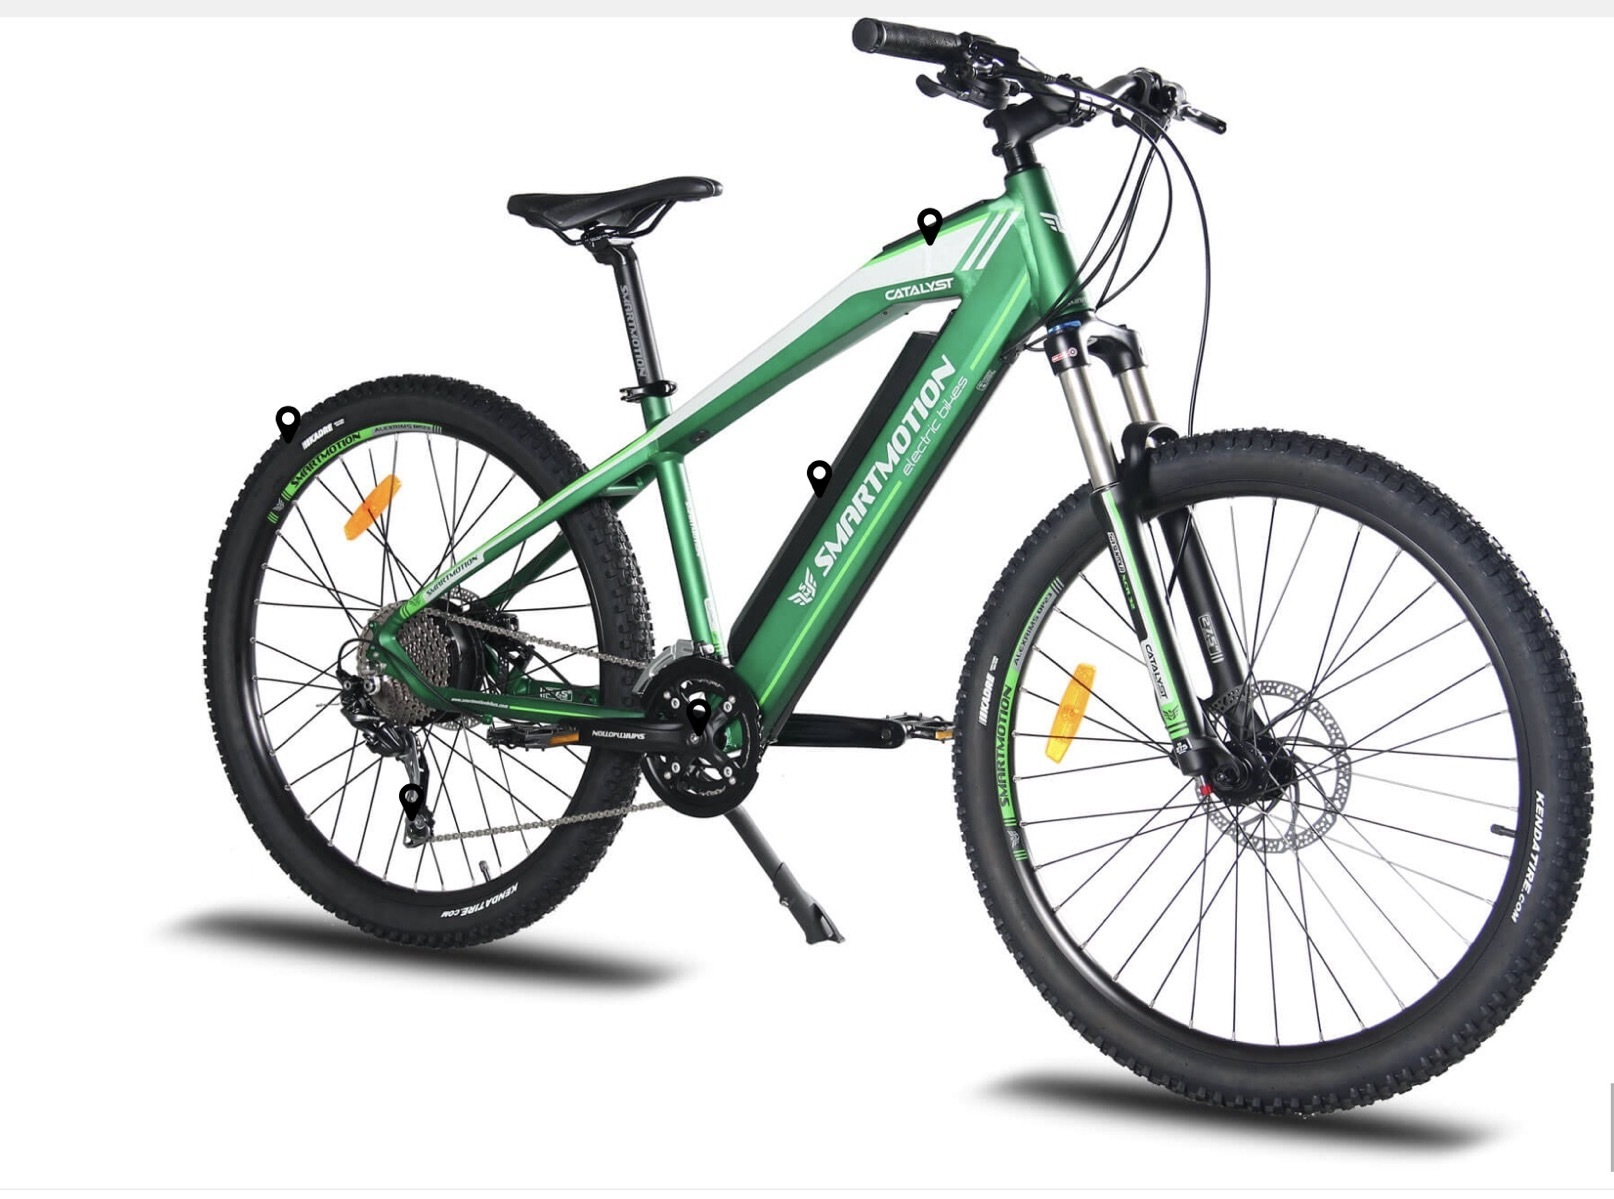 Electric Bikes - Catalyst - 0417400040